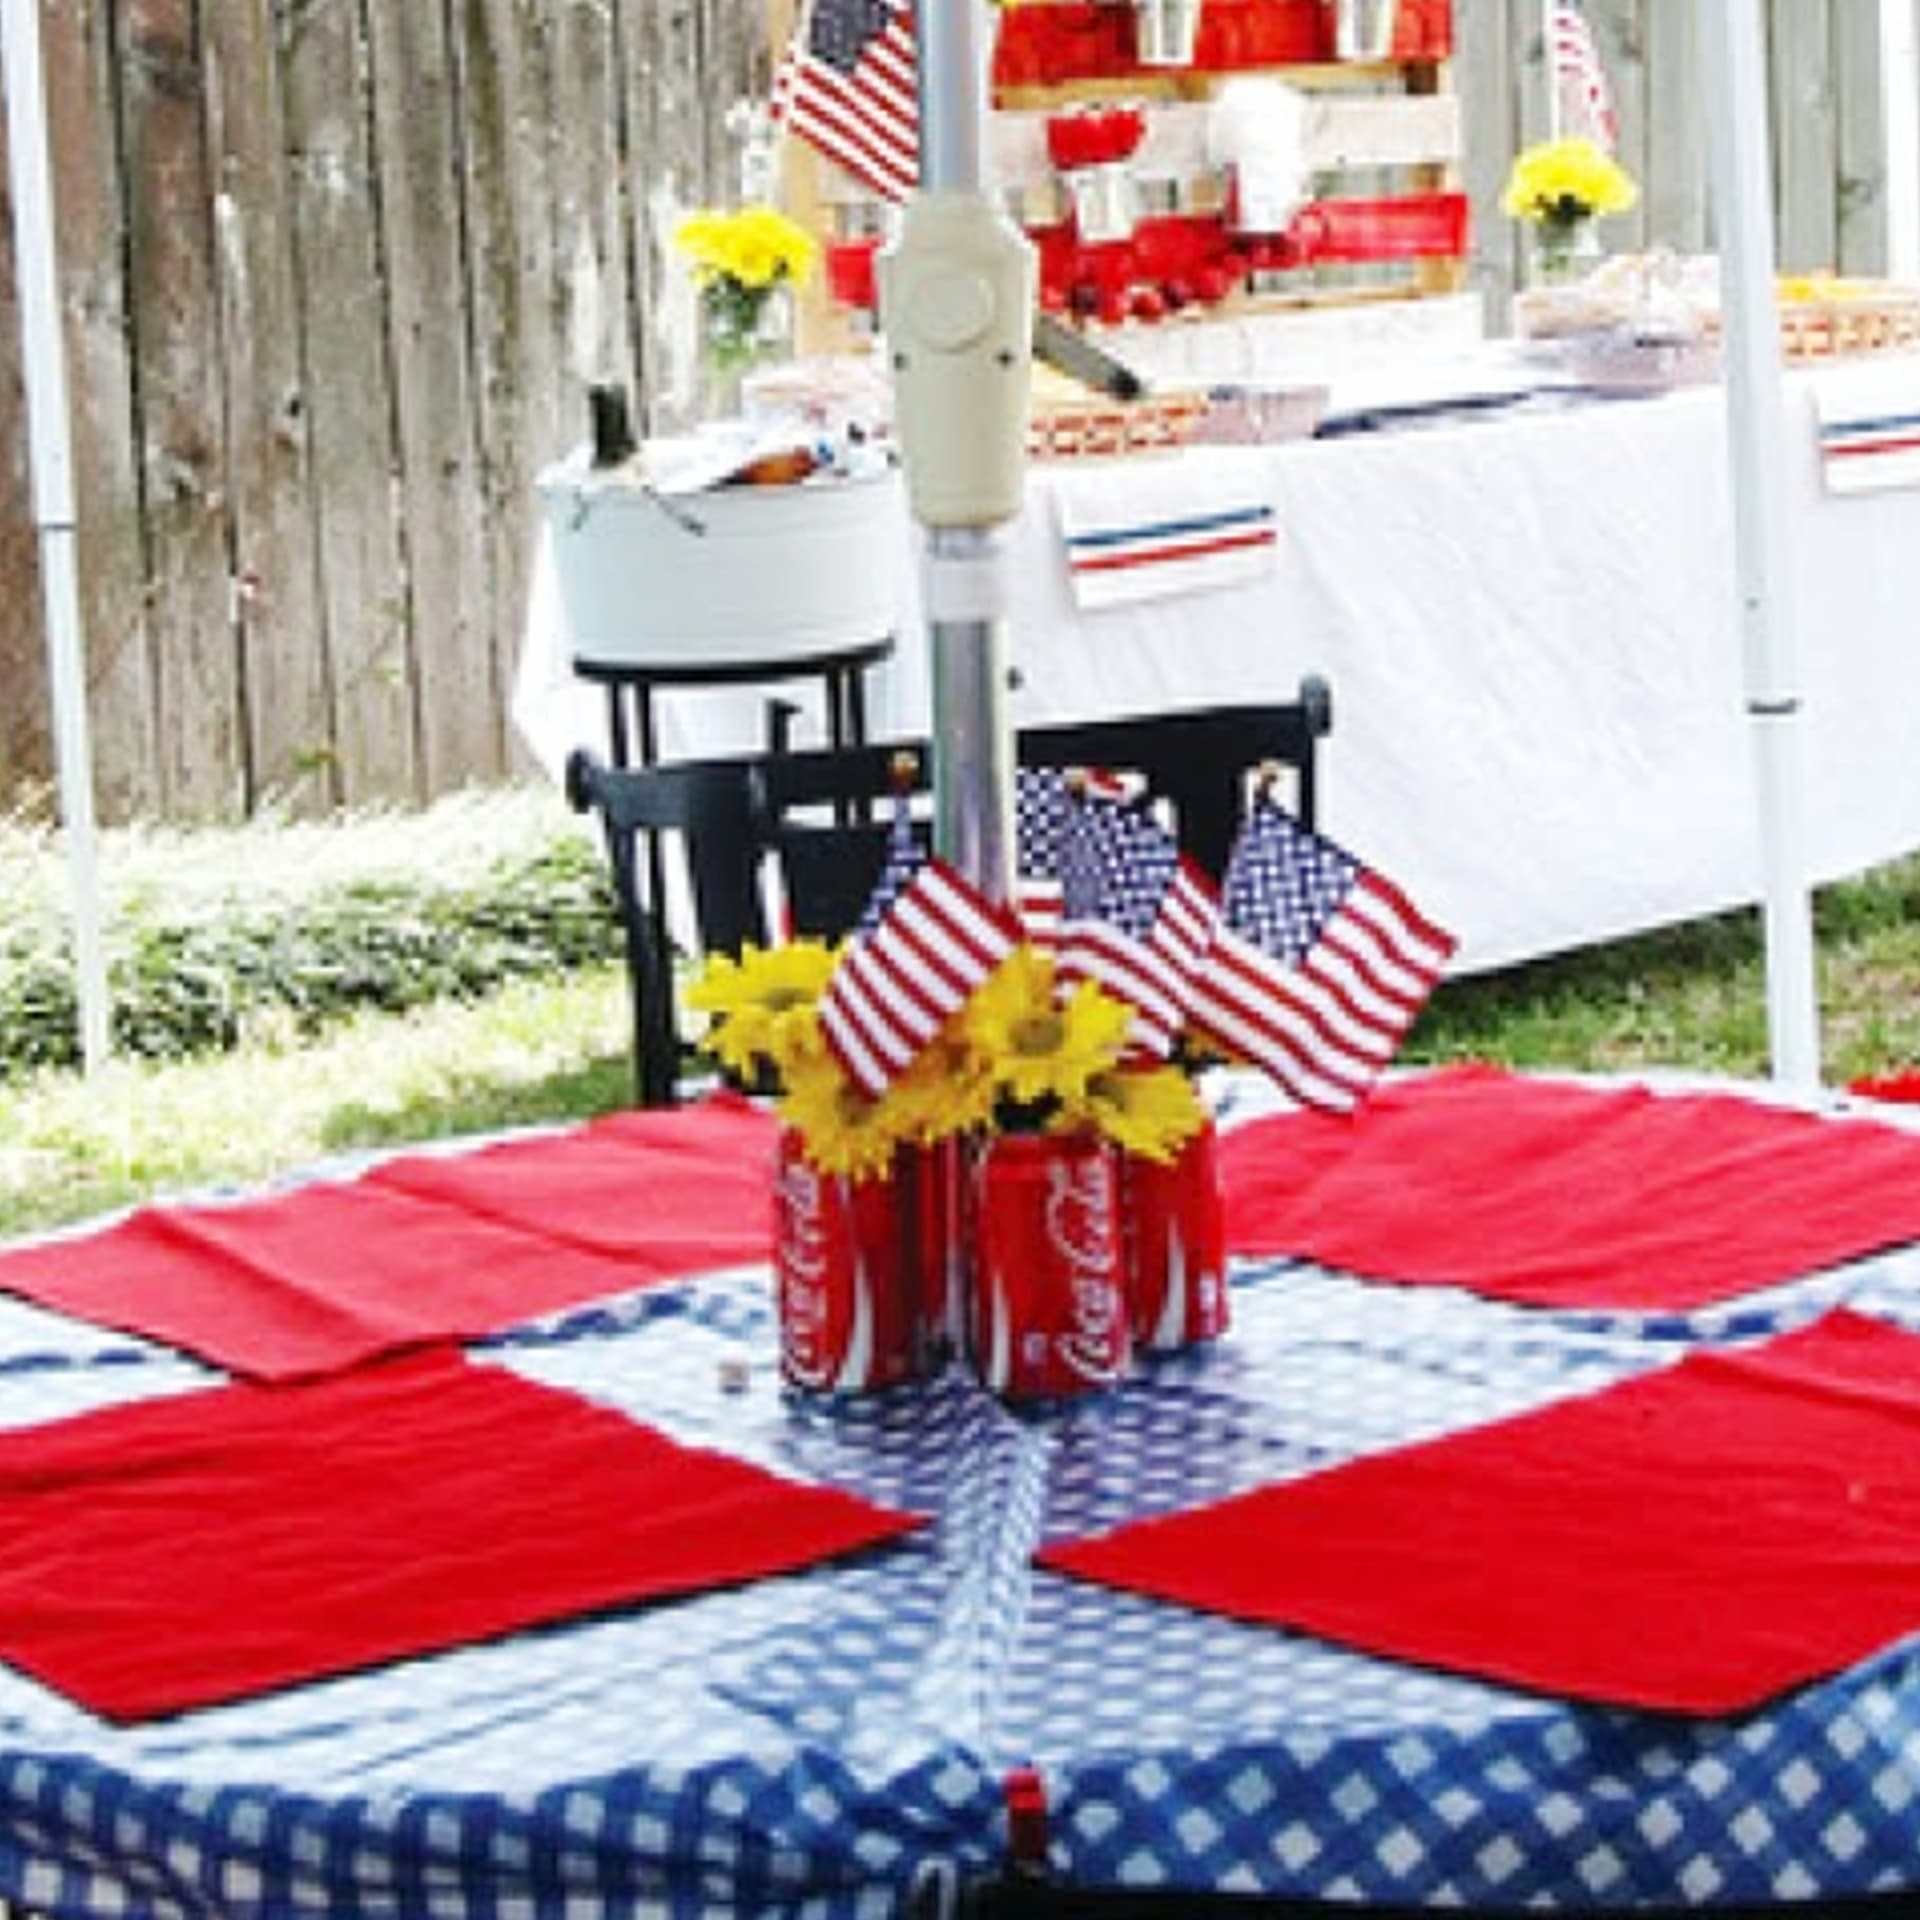 4th of July party ideas - table decorating ideas for a 4th of July party, cookout or block party